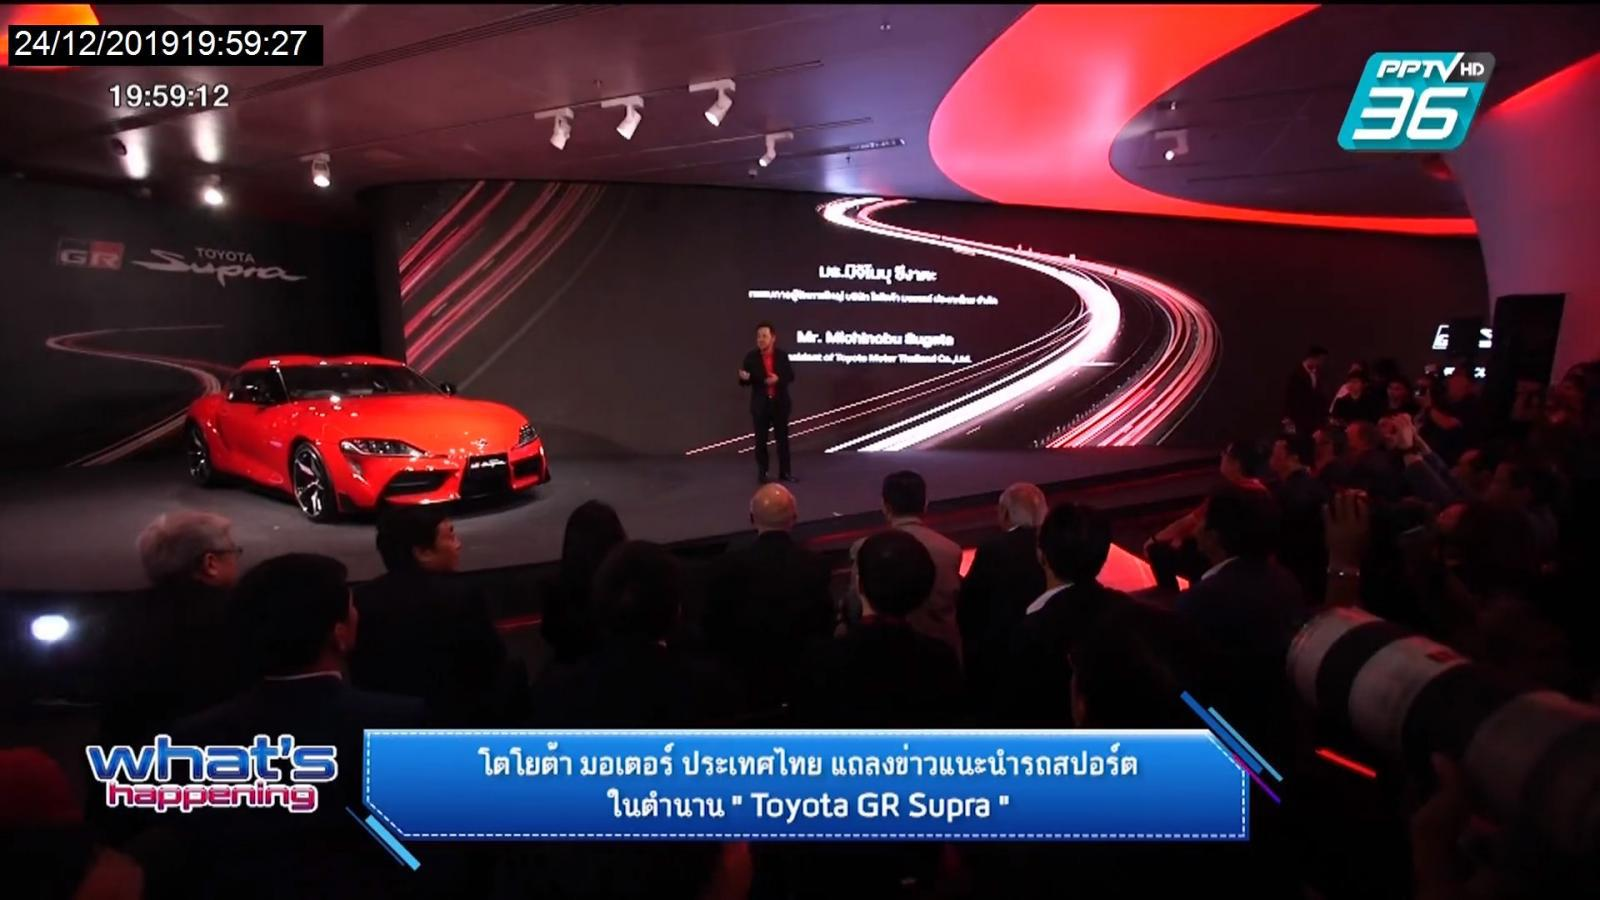 Toyota GR Supra Excusive Party